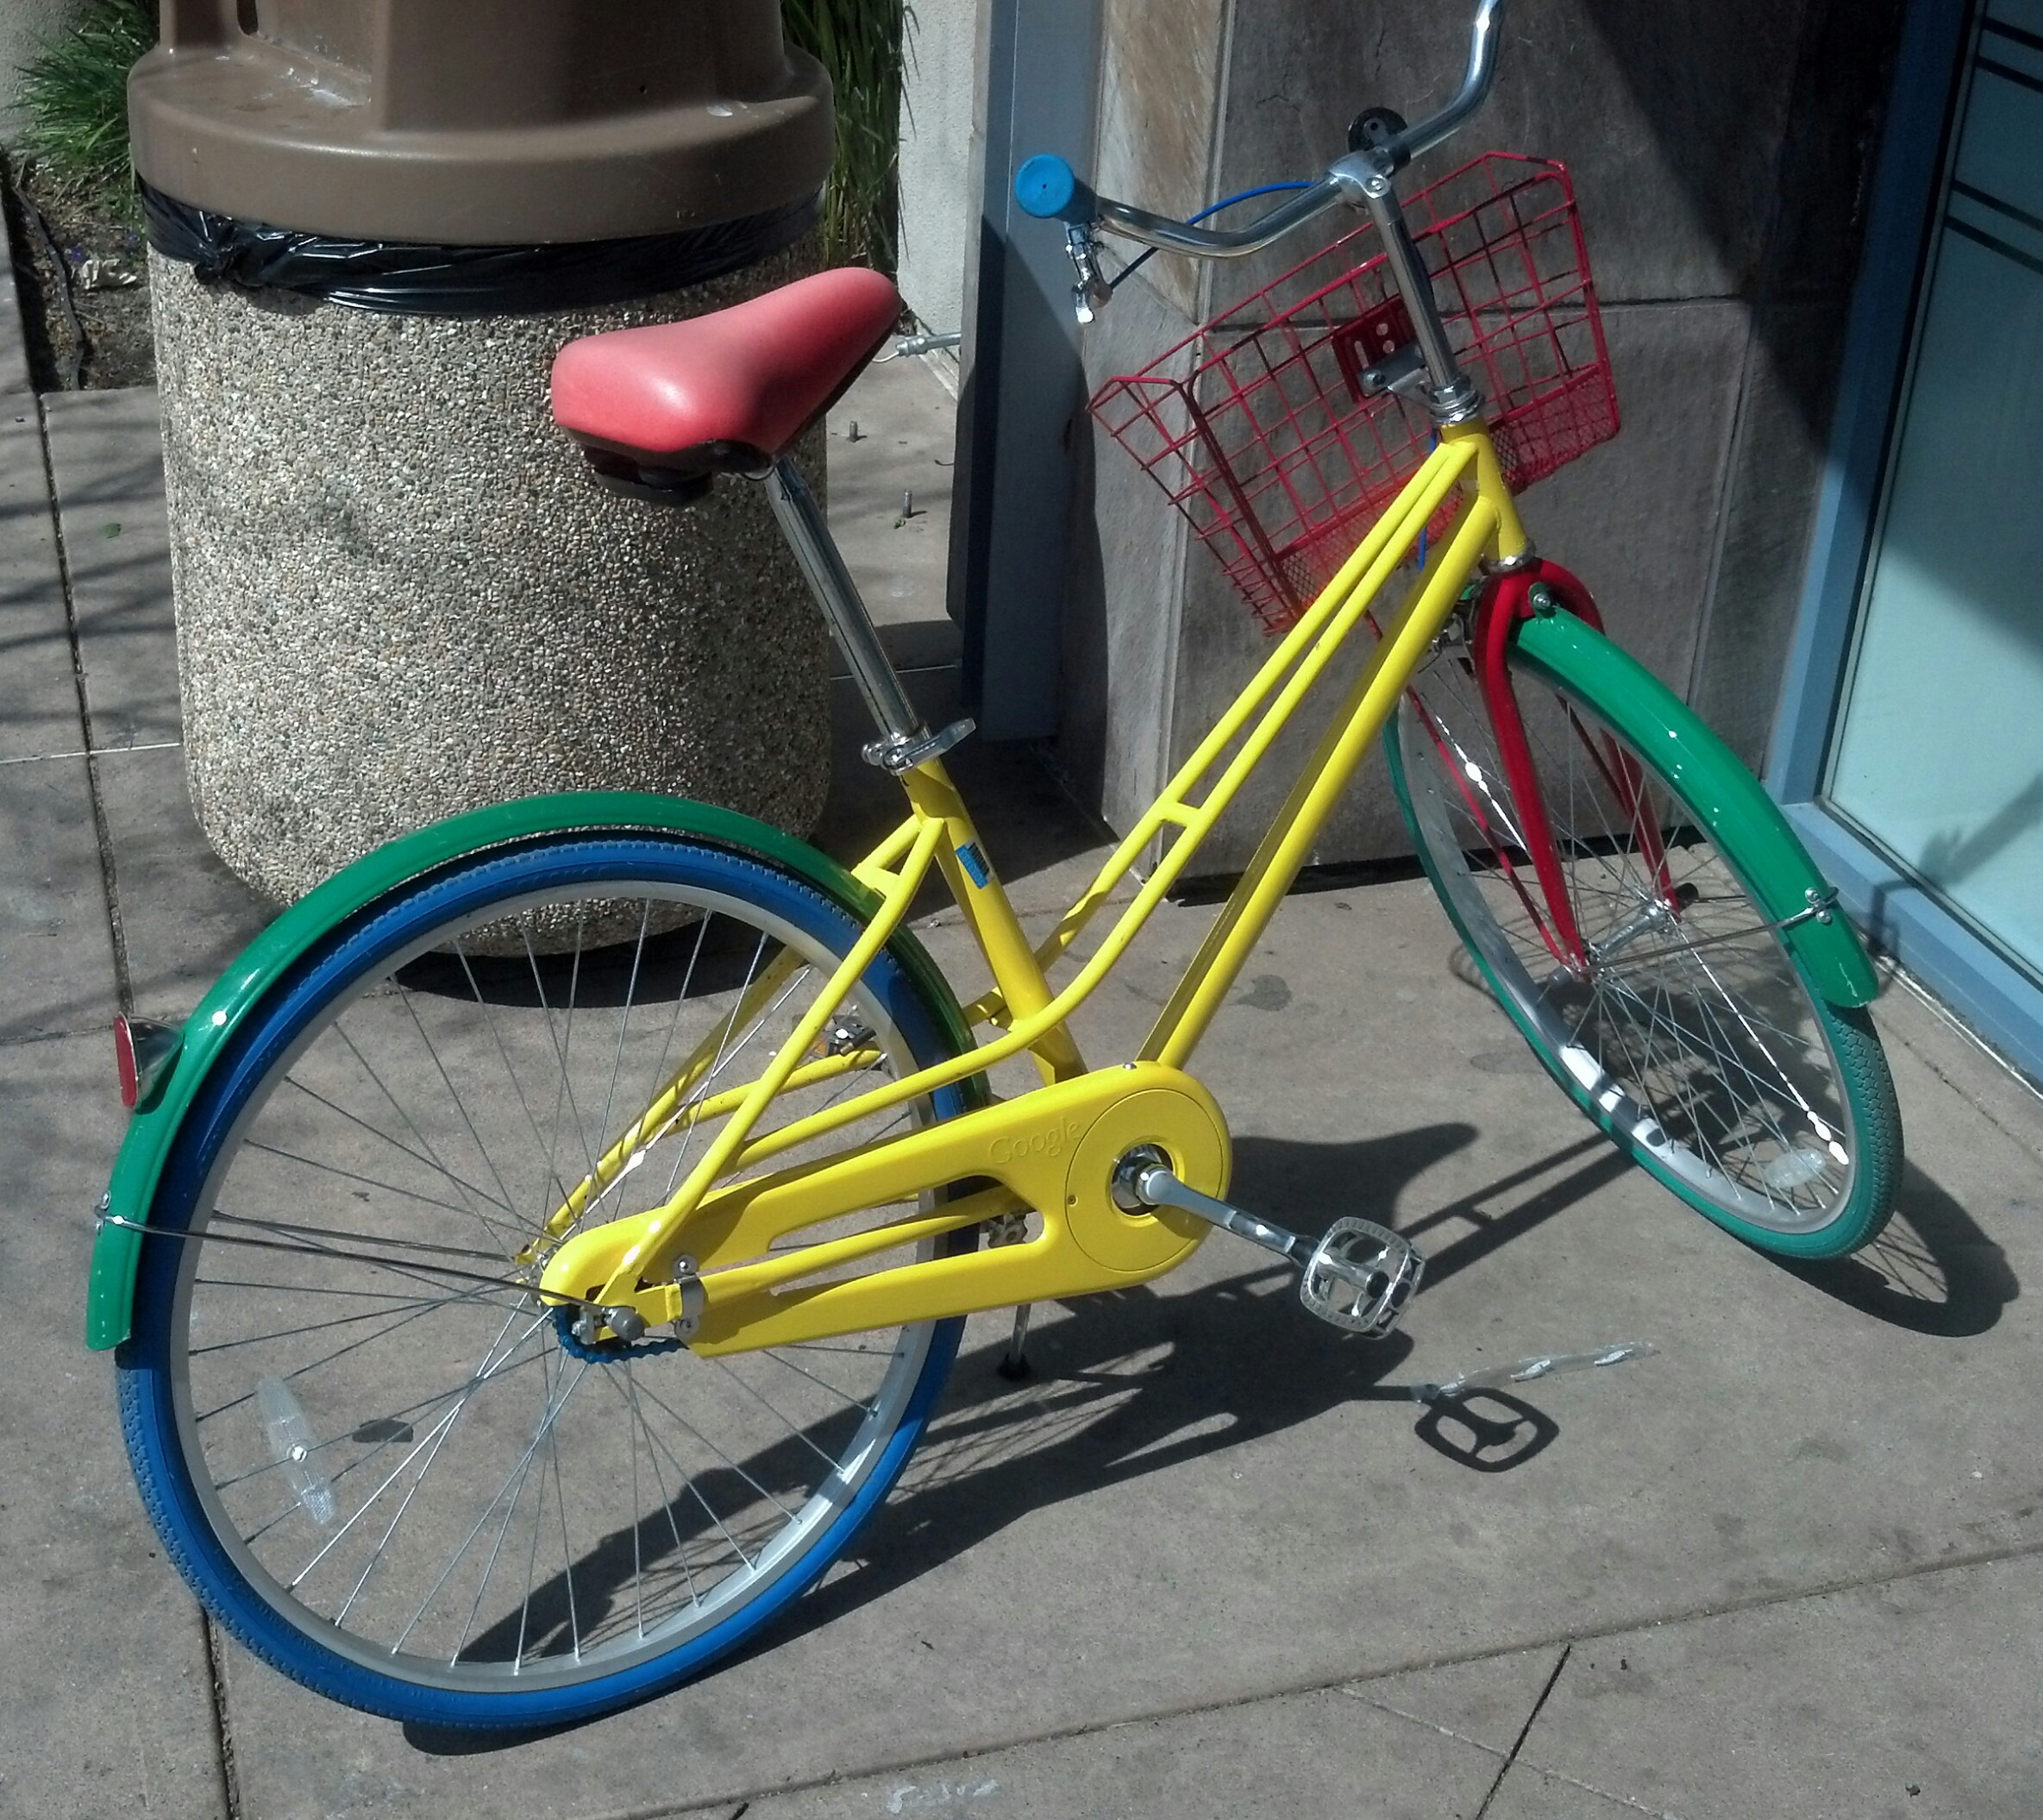 Bicycles painted in the corporate color scheme are available for free use by any employee travelling around the Googleplex